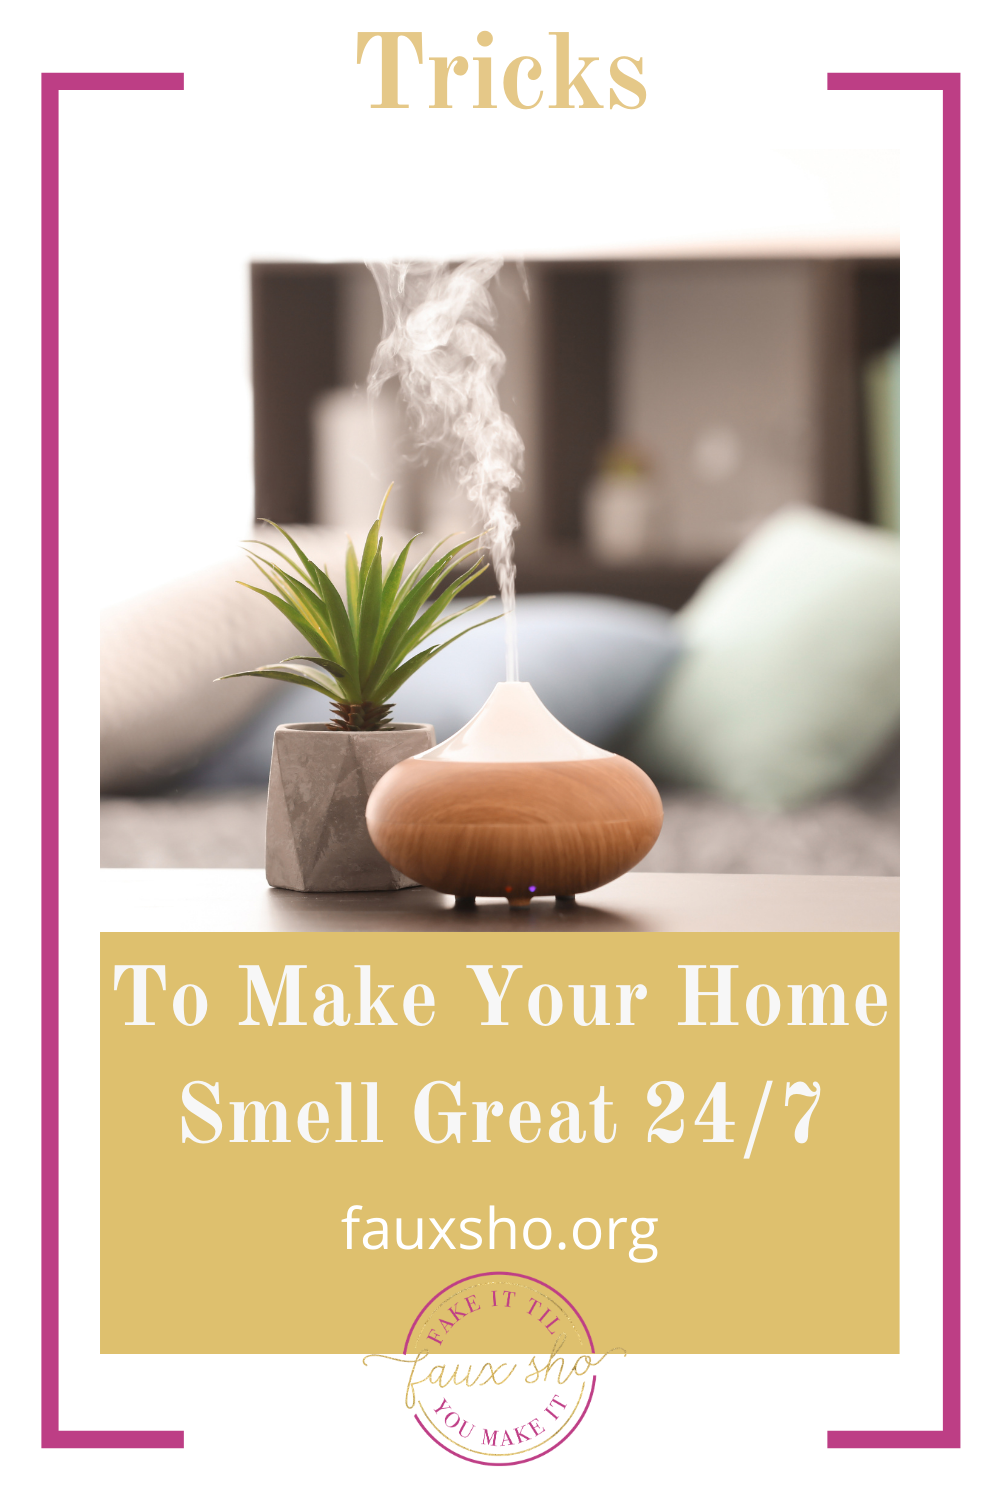 Fauxsho.org is loaded with easy and creative hacks for your everyday life. Find solutions for every little problem. Learn how to make your home smell fantastic all the time.